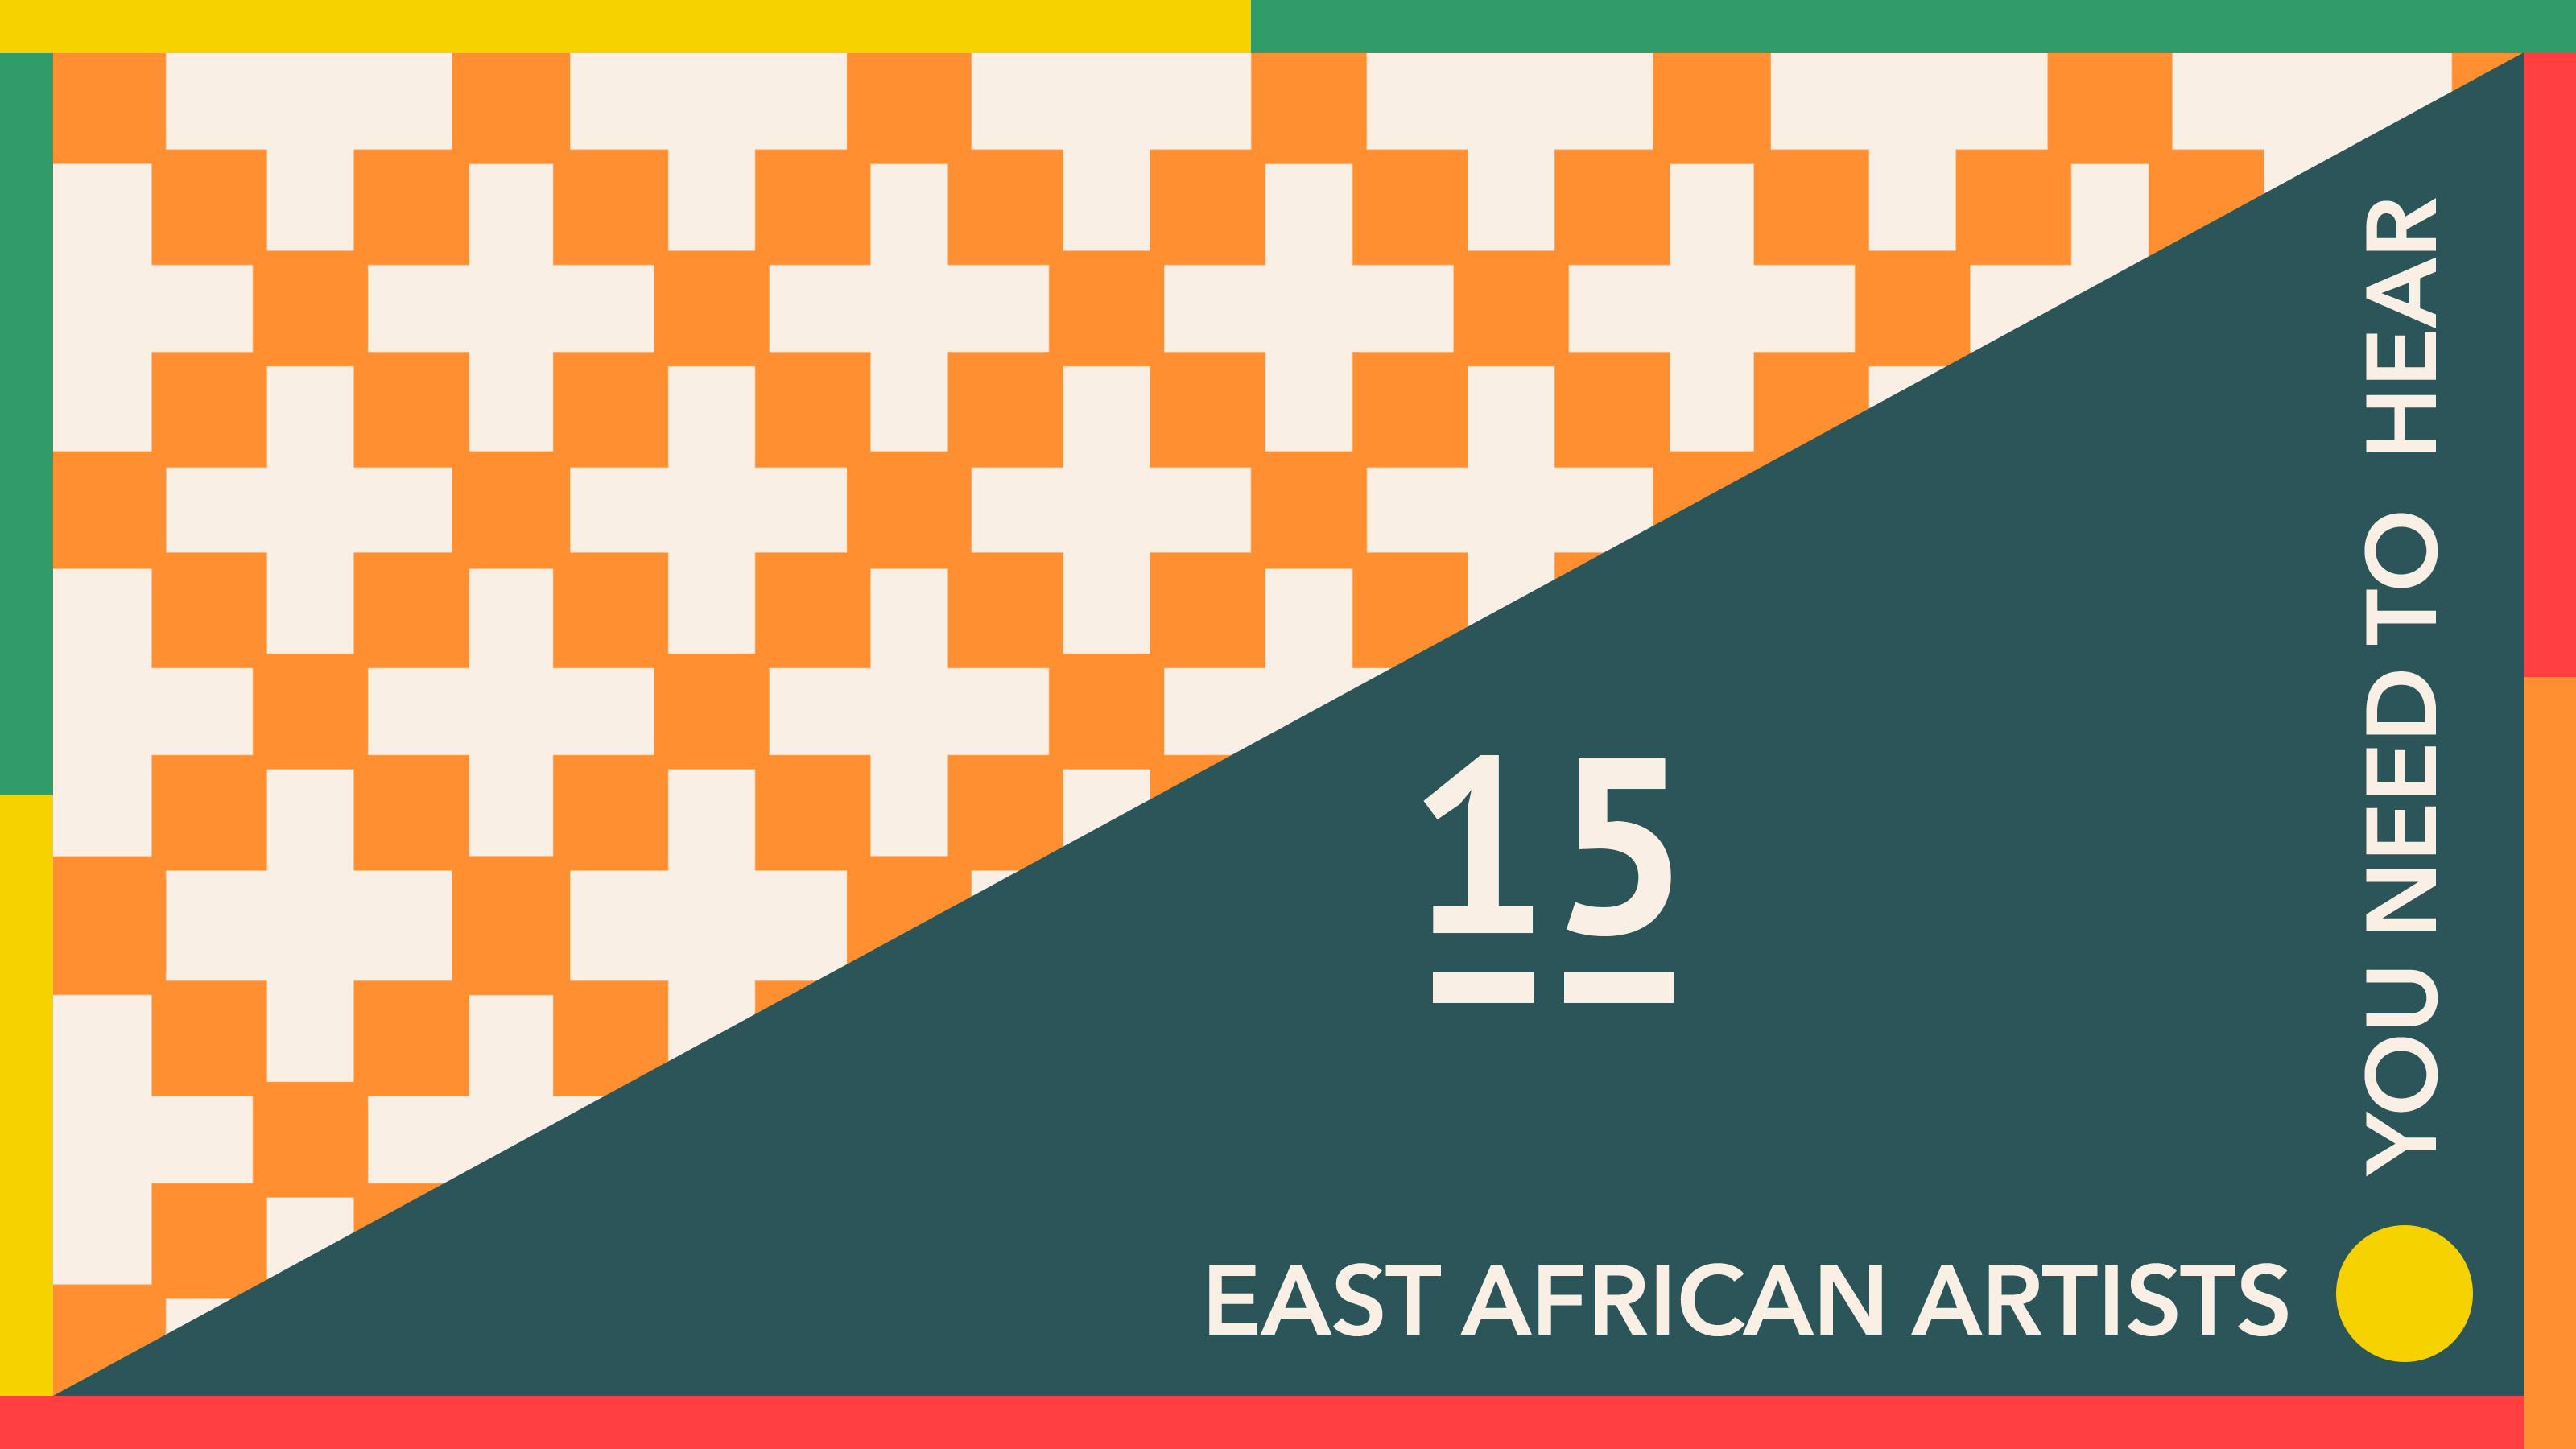 RA: 15 East African artists you need to hear